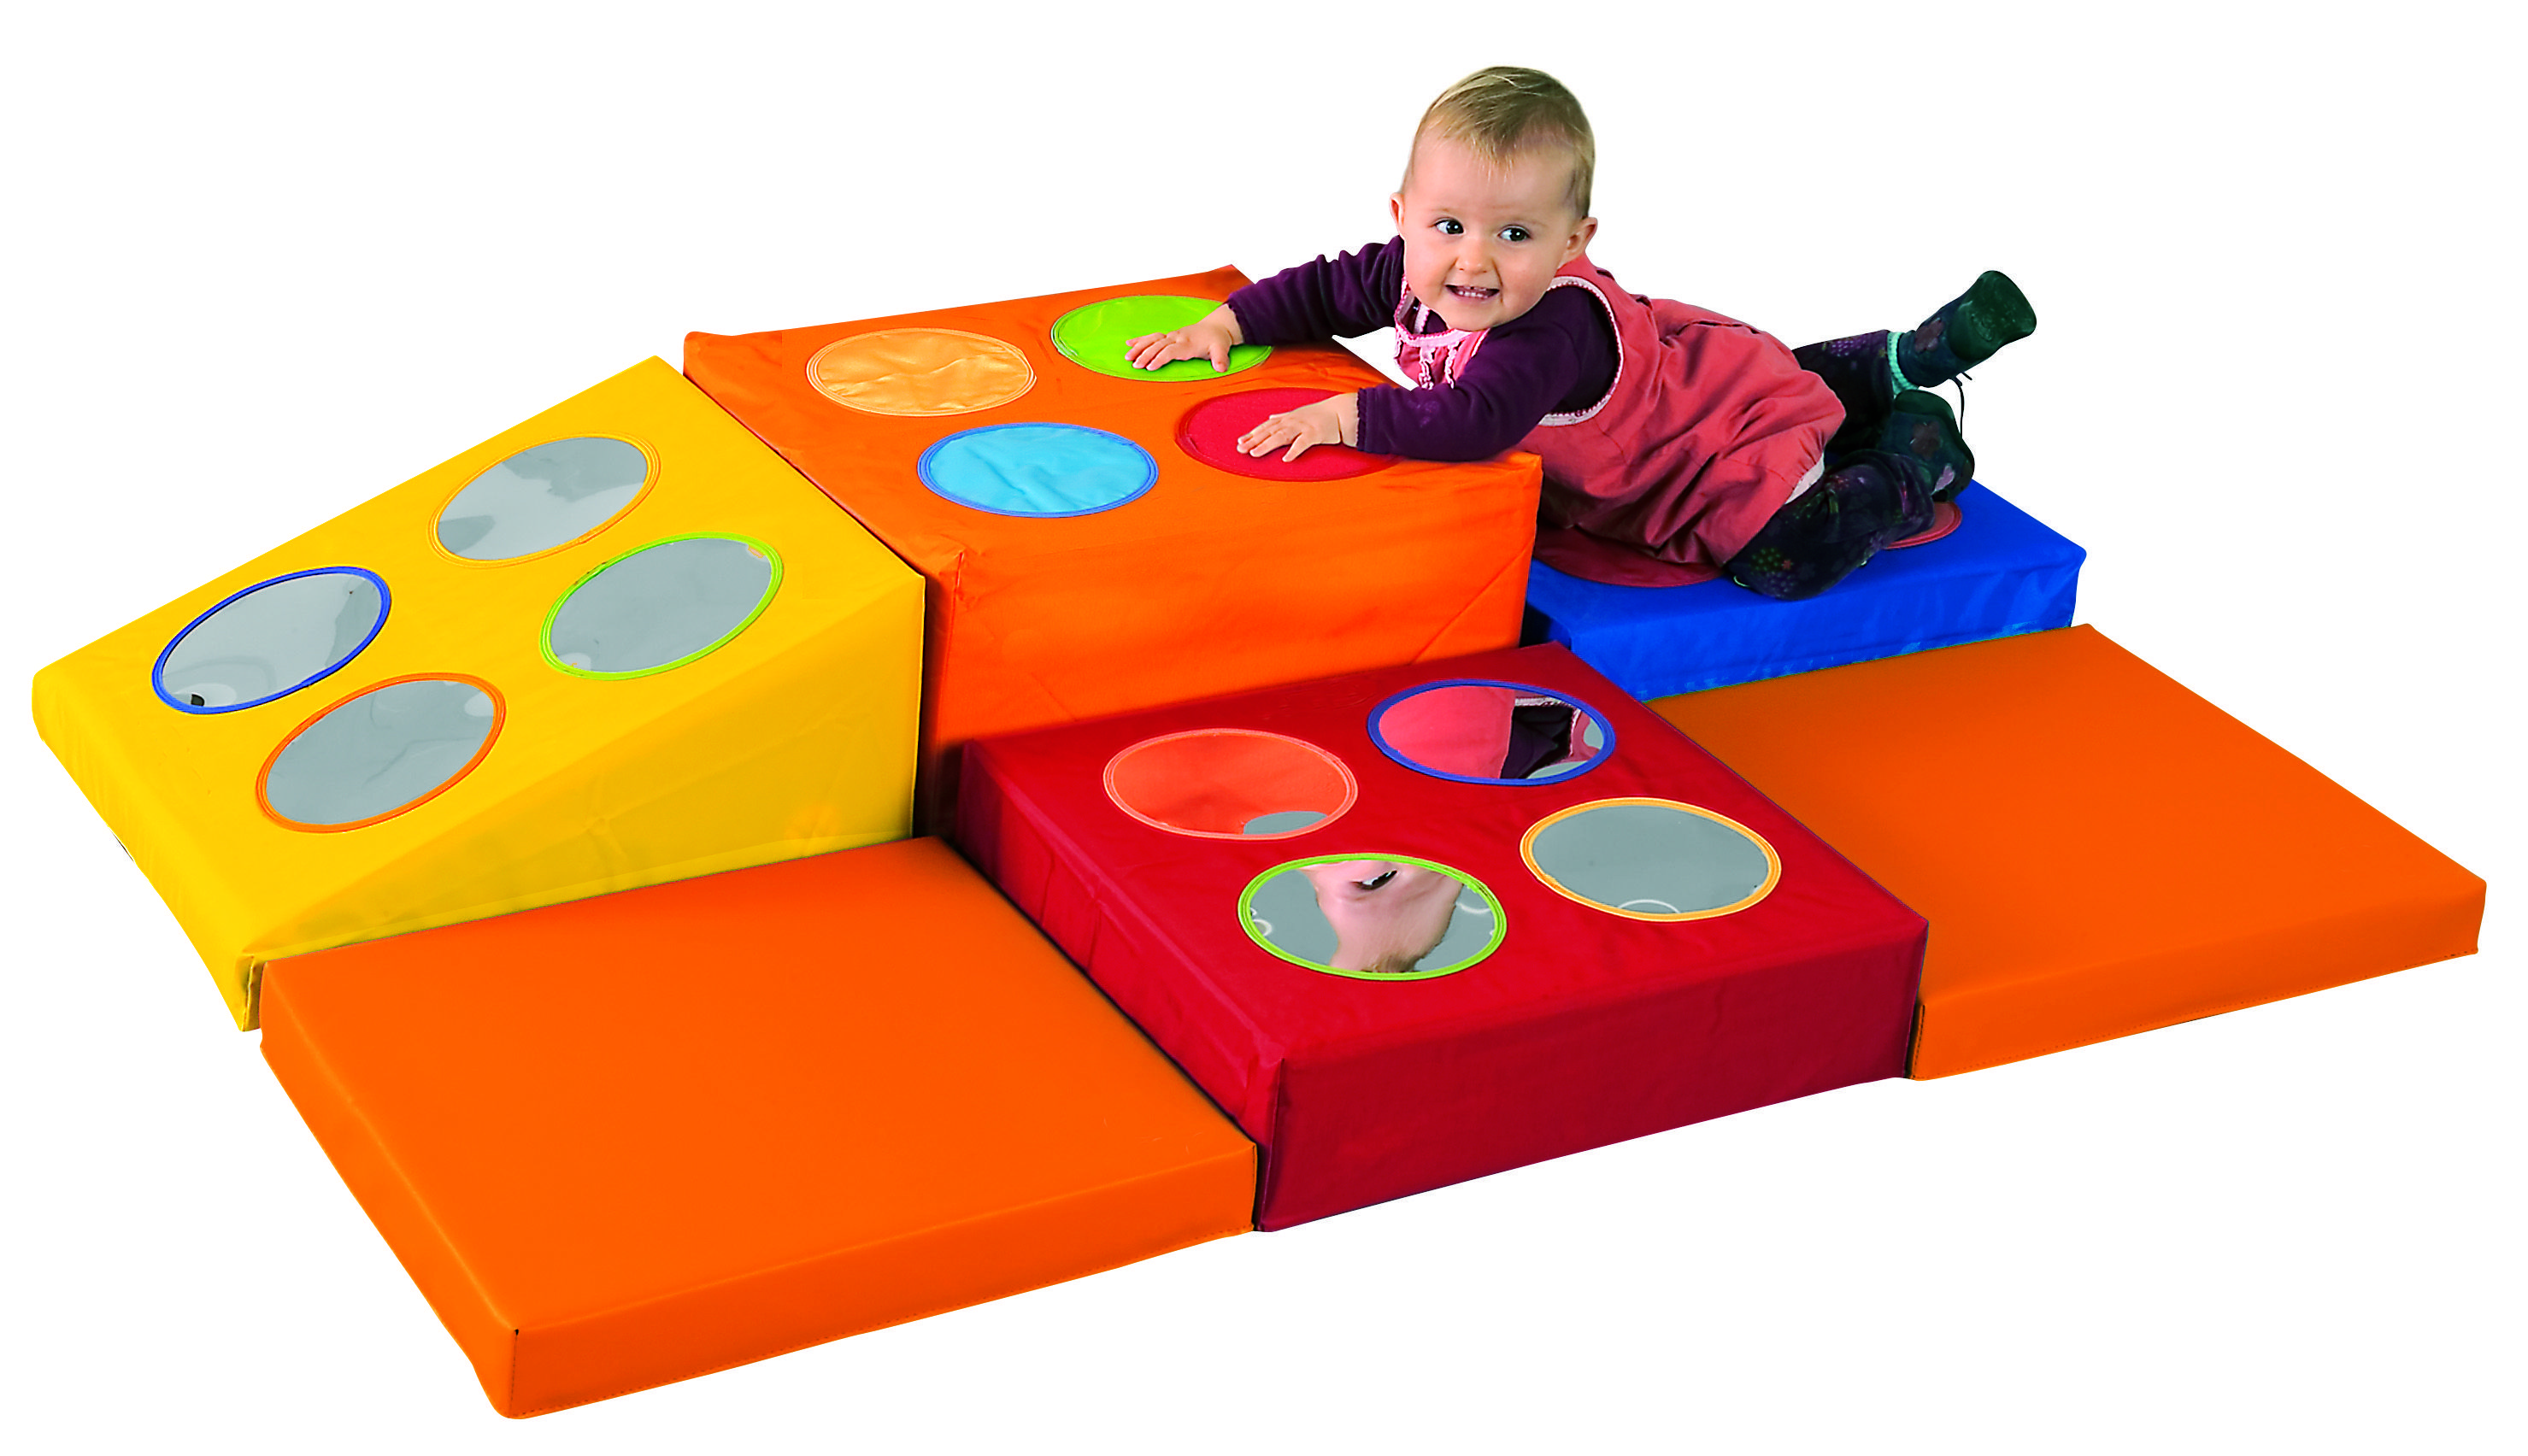 Multiple Level Tiny Tot Module Kit From Wesco Multi Textured For Sensory Stimulation These Mats Are Perfect For Your Little Ones Playroom Daycare